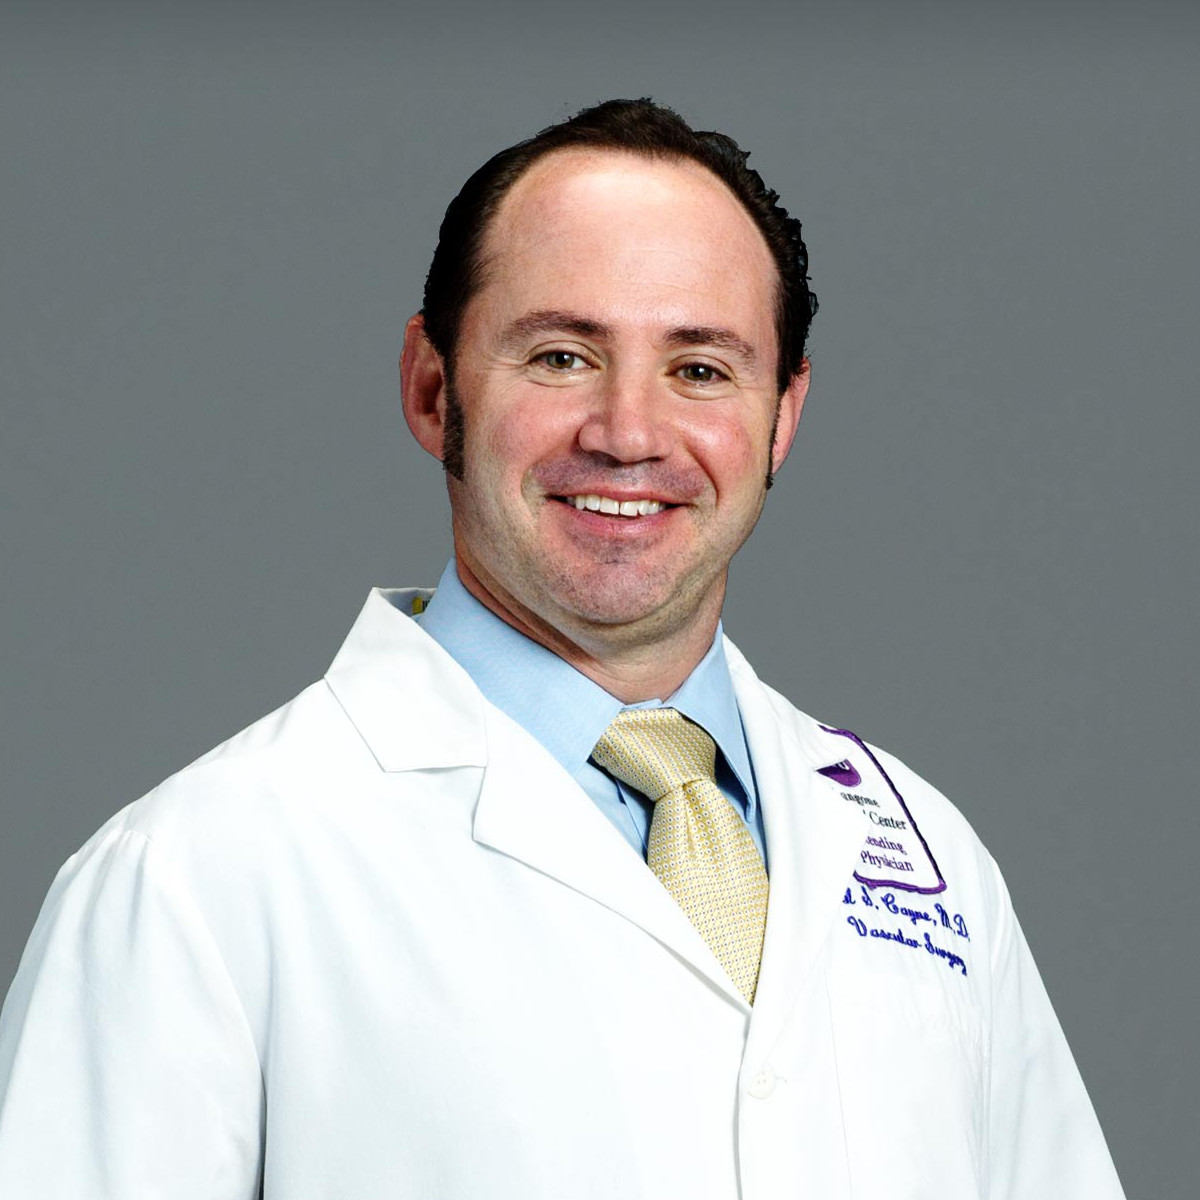 Neal S. Cayne,MD. Vascular Surgery